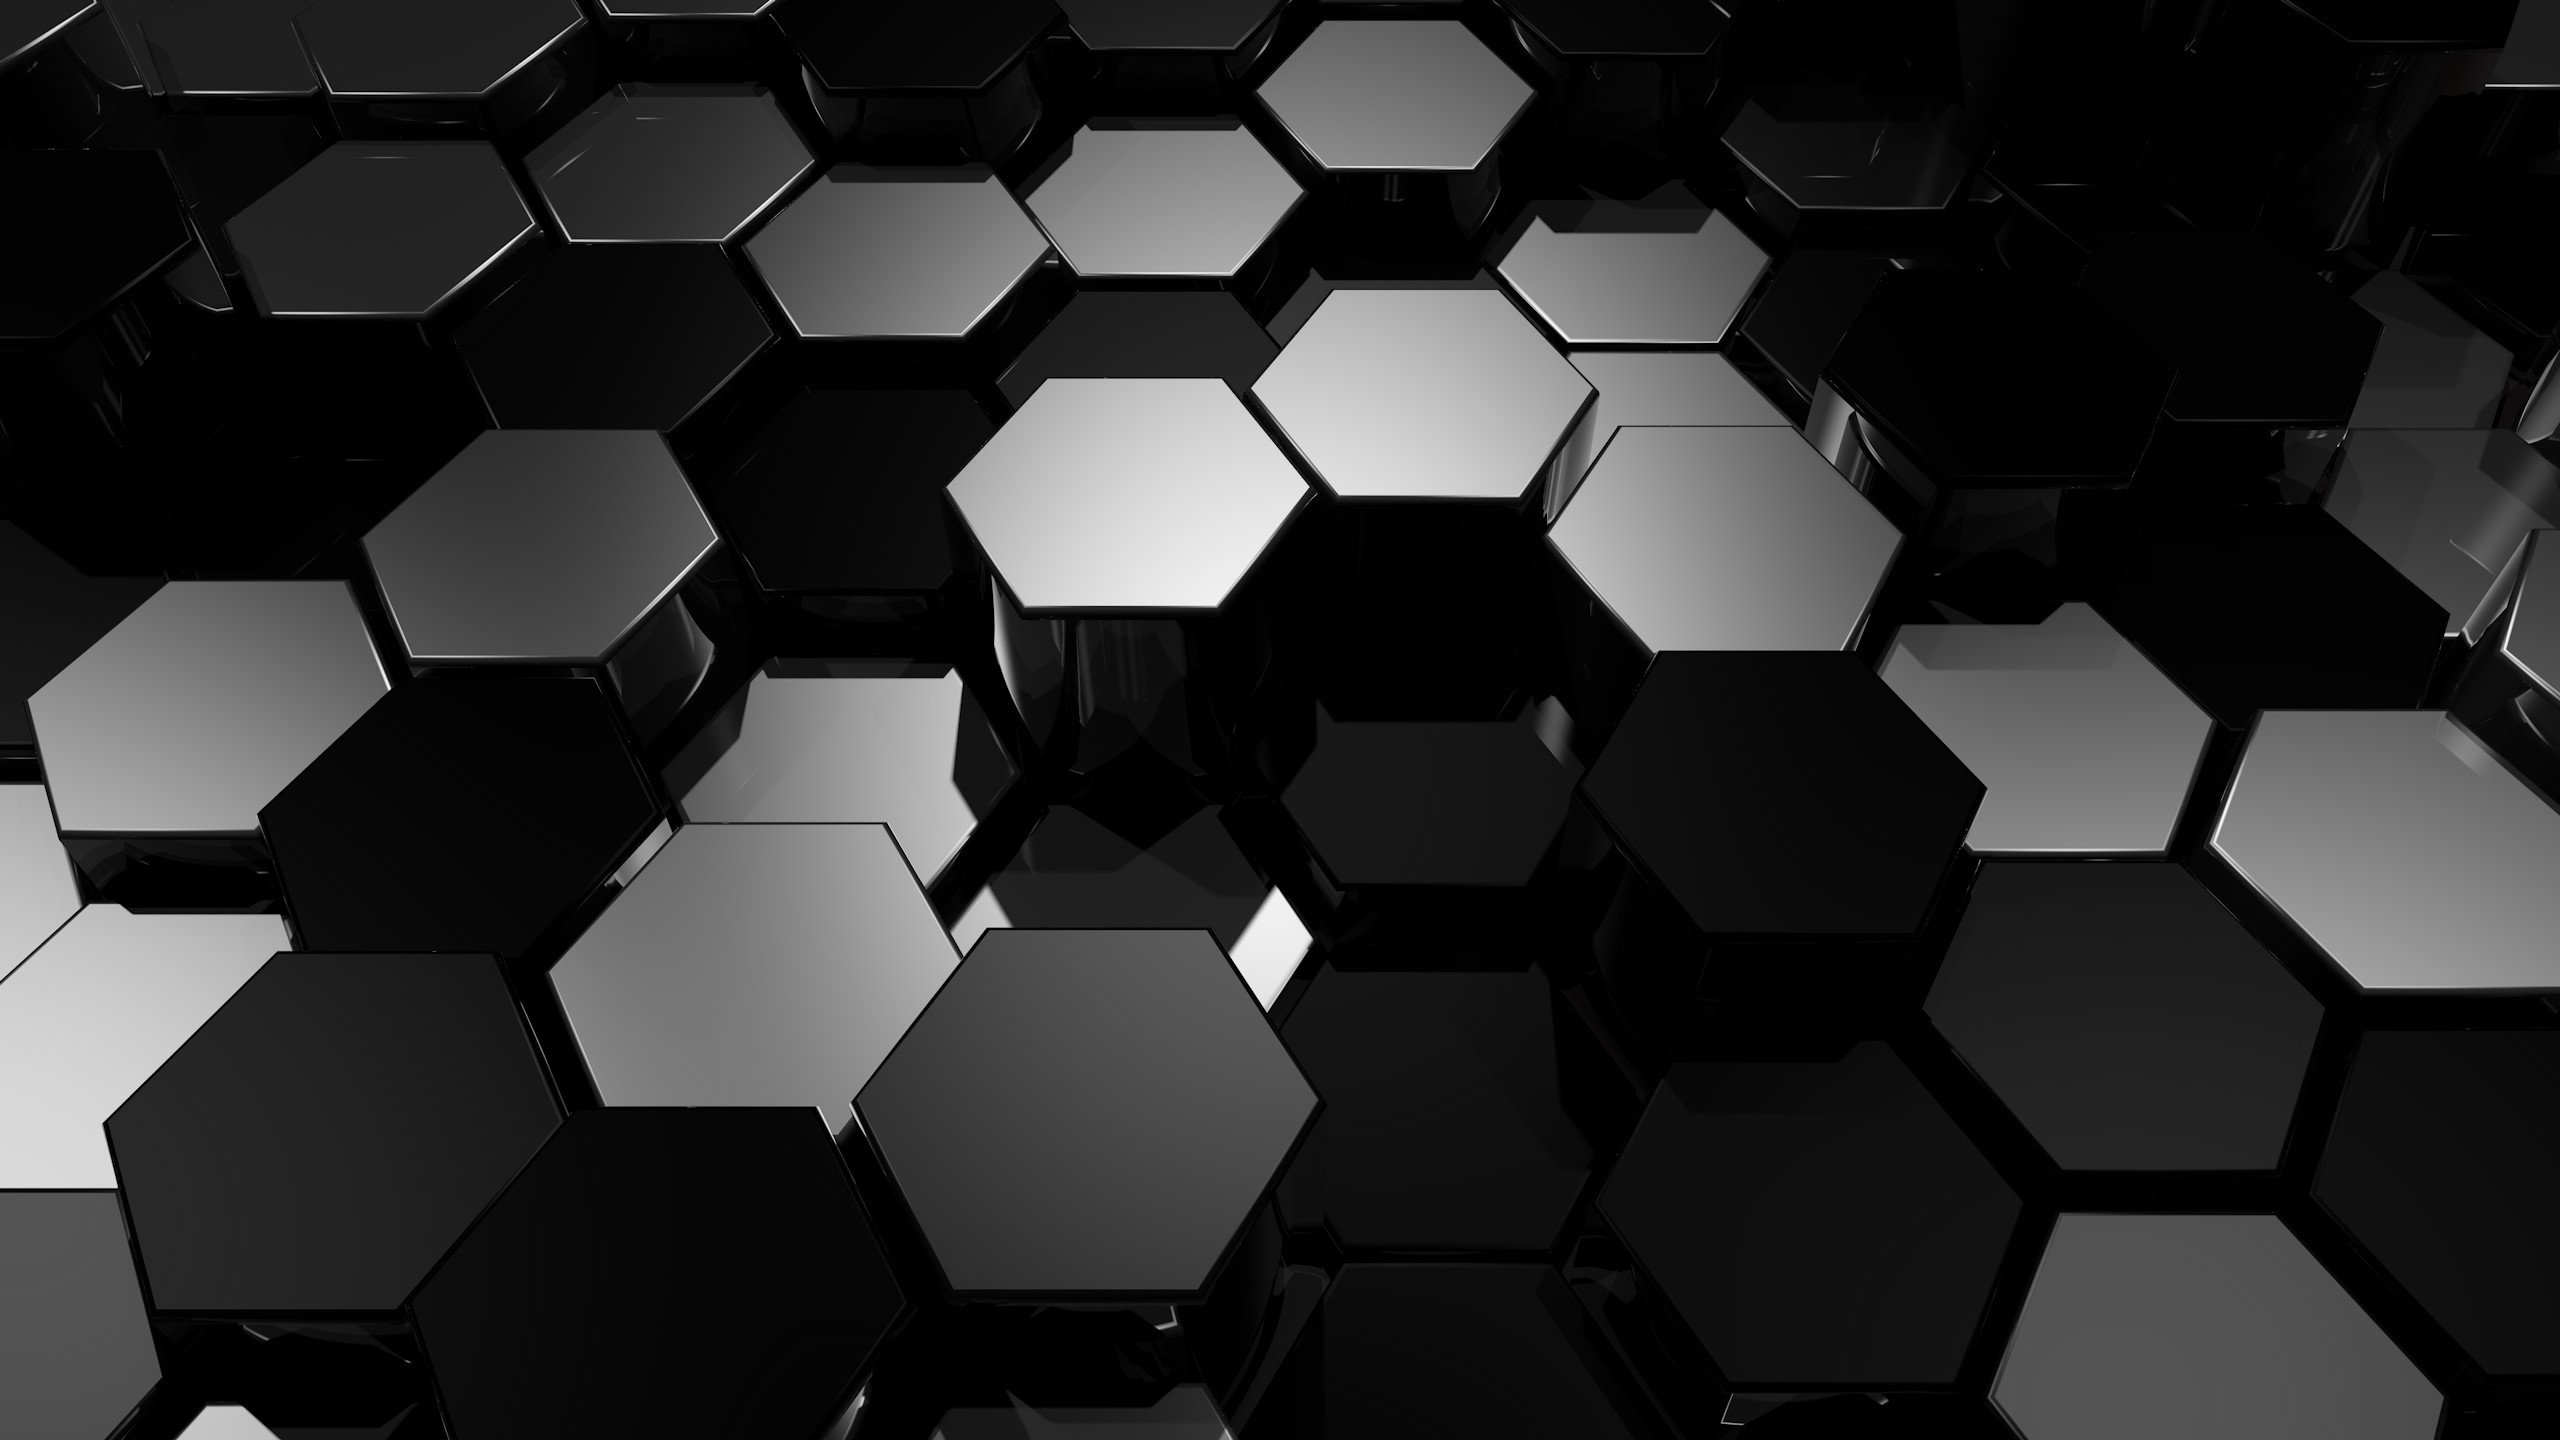 Download hd 2560x1440 Honeycomb PC wallpaper ID:166067 for free